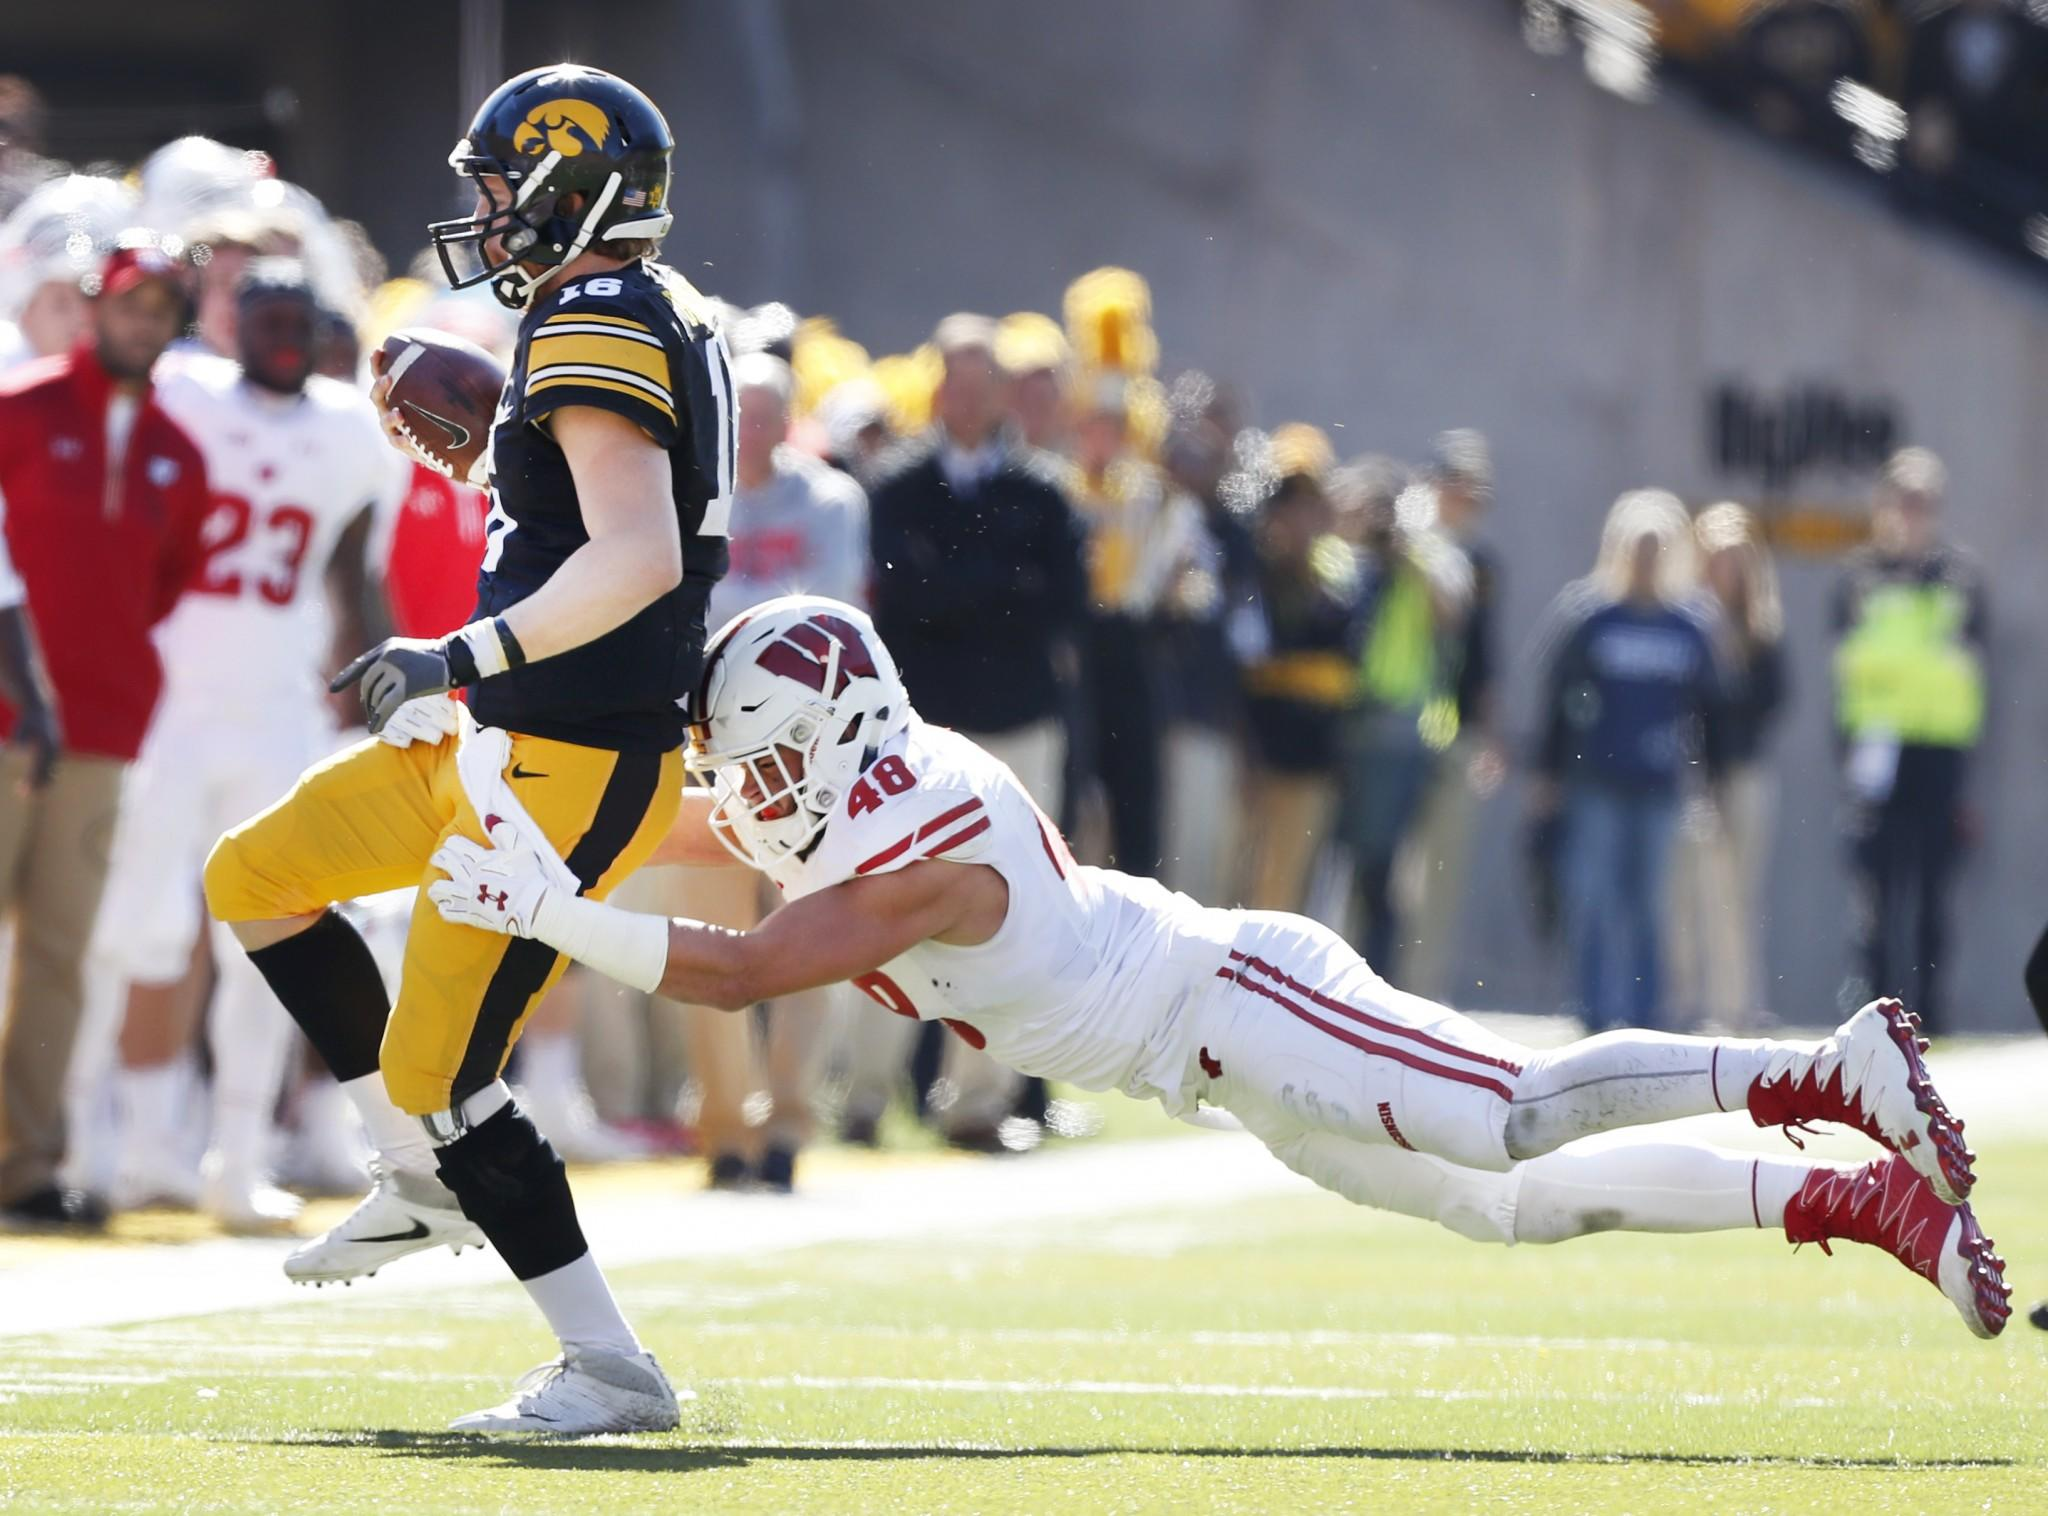 Wisconsin leading tackler Jack Cichy out for season